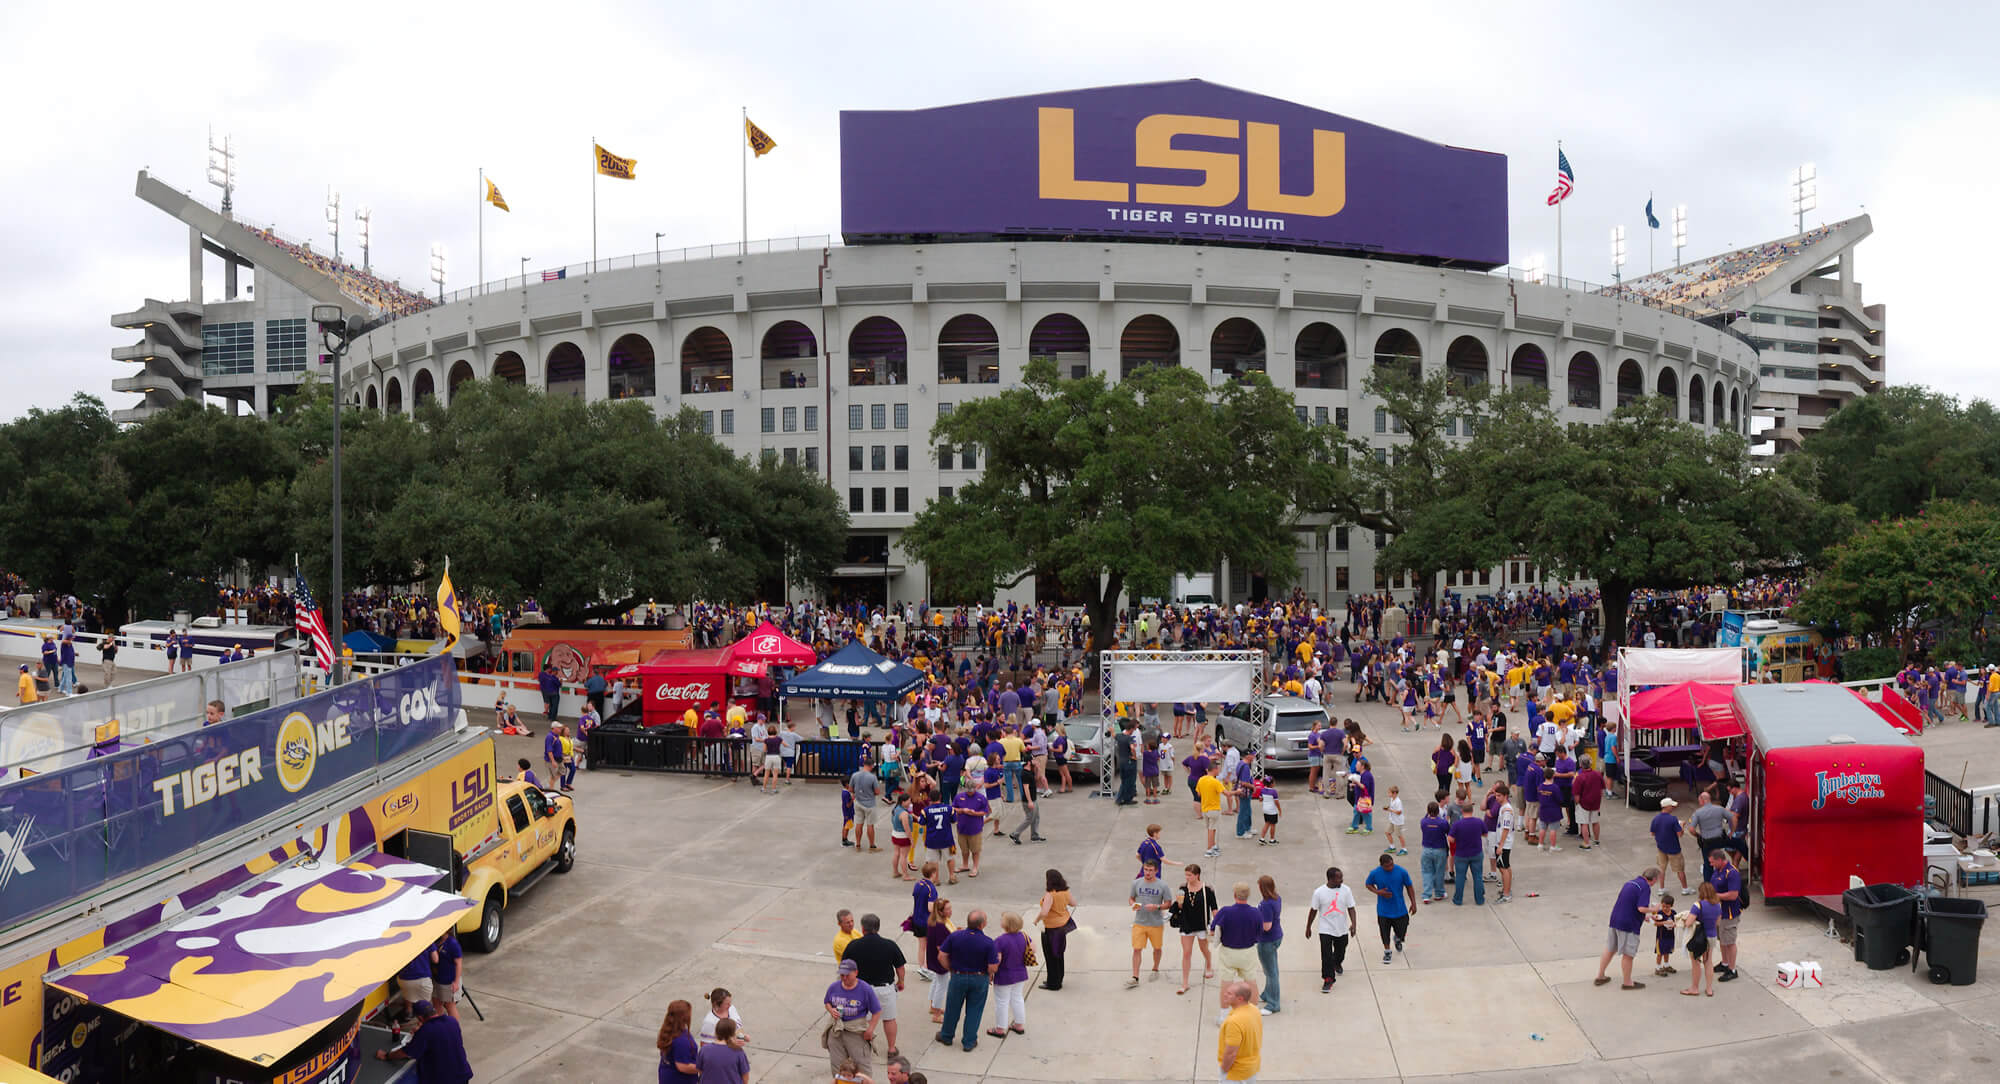 LSU Tiger Stadium, Baton Rouge